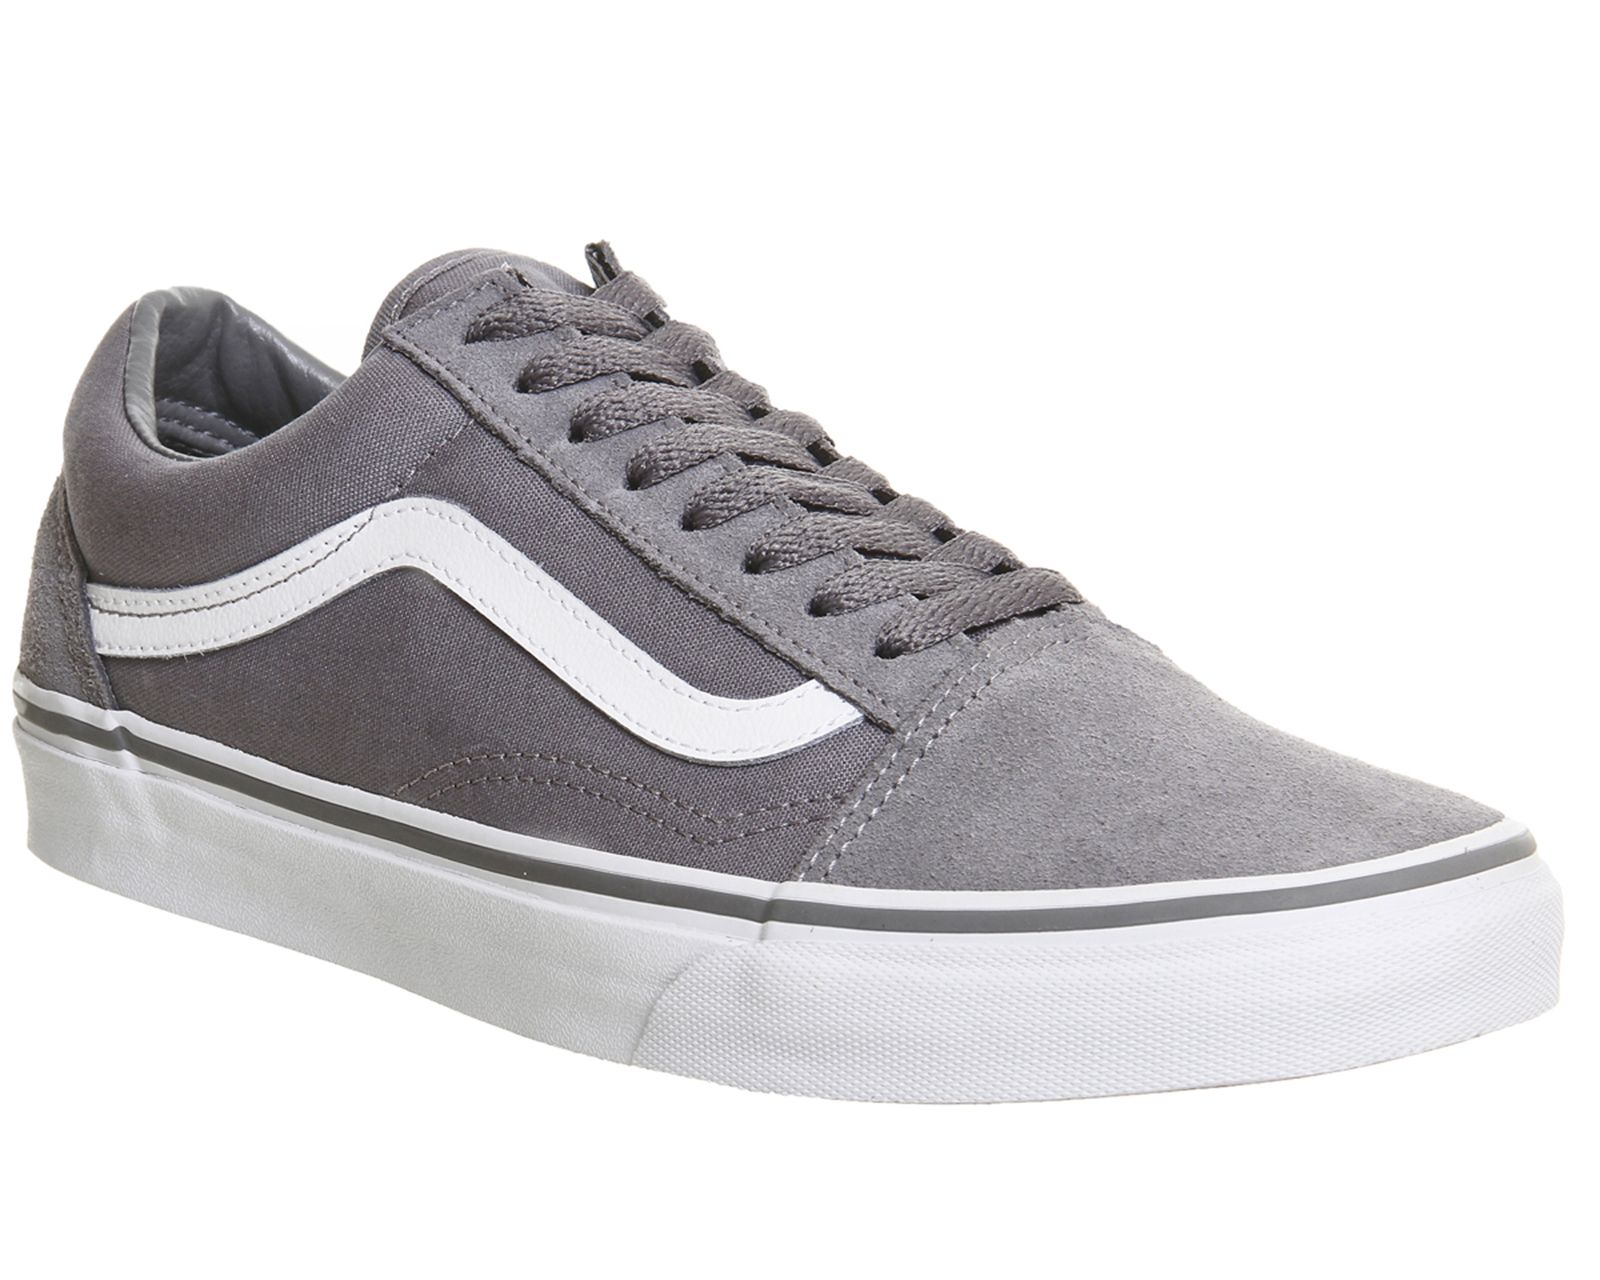 Vans Old Skool Trainers Frost Grey White - Unisex Sports